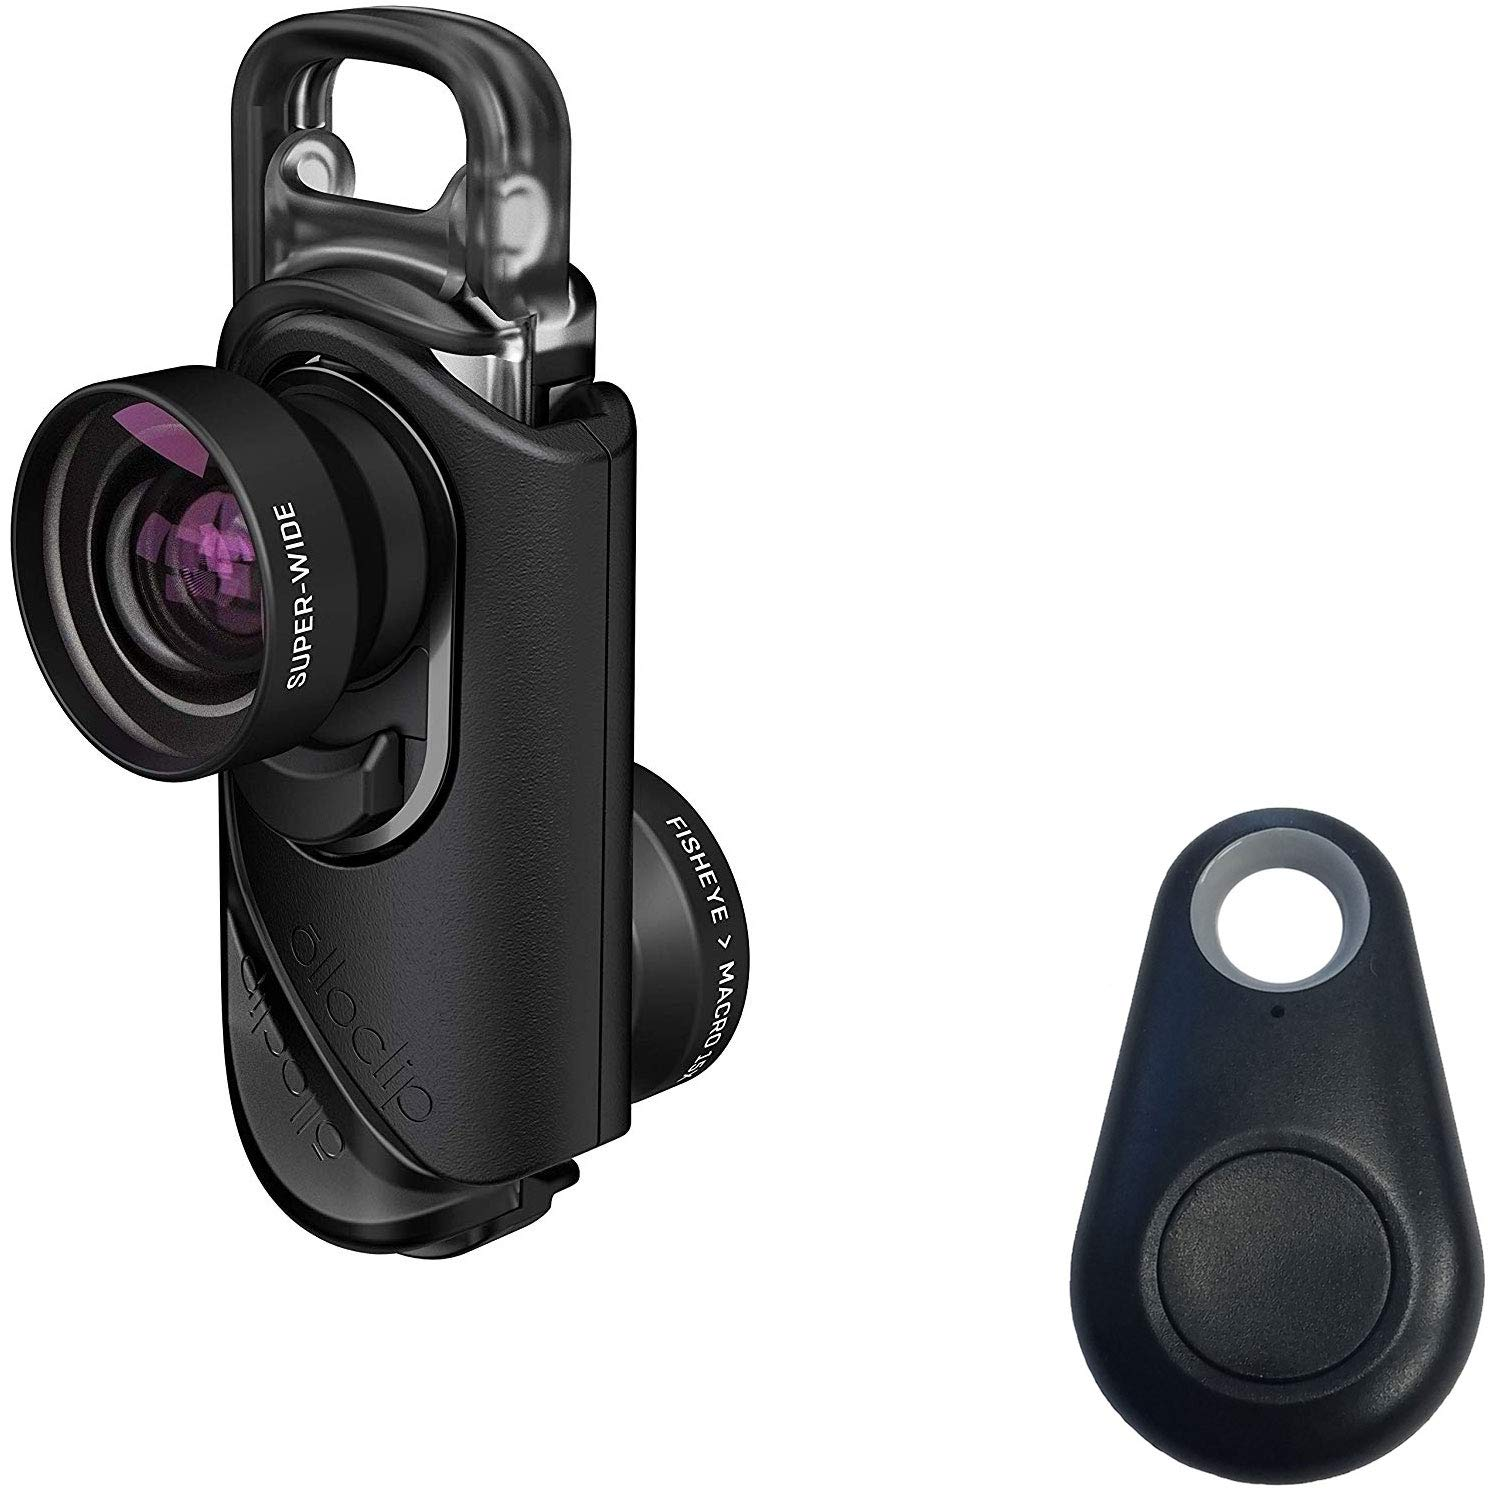 olloclip 3-in-1 Lens Kit Includes: Fisheye, Super-Wide and Macro 15x Premium Glass Lenses for iPhone 8/8 Plus & iPhone 7/7 Plus with Selfie Bluetooth Remote Shutter by olloclip